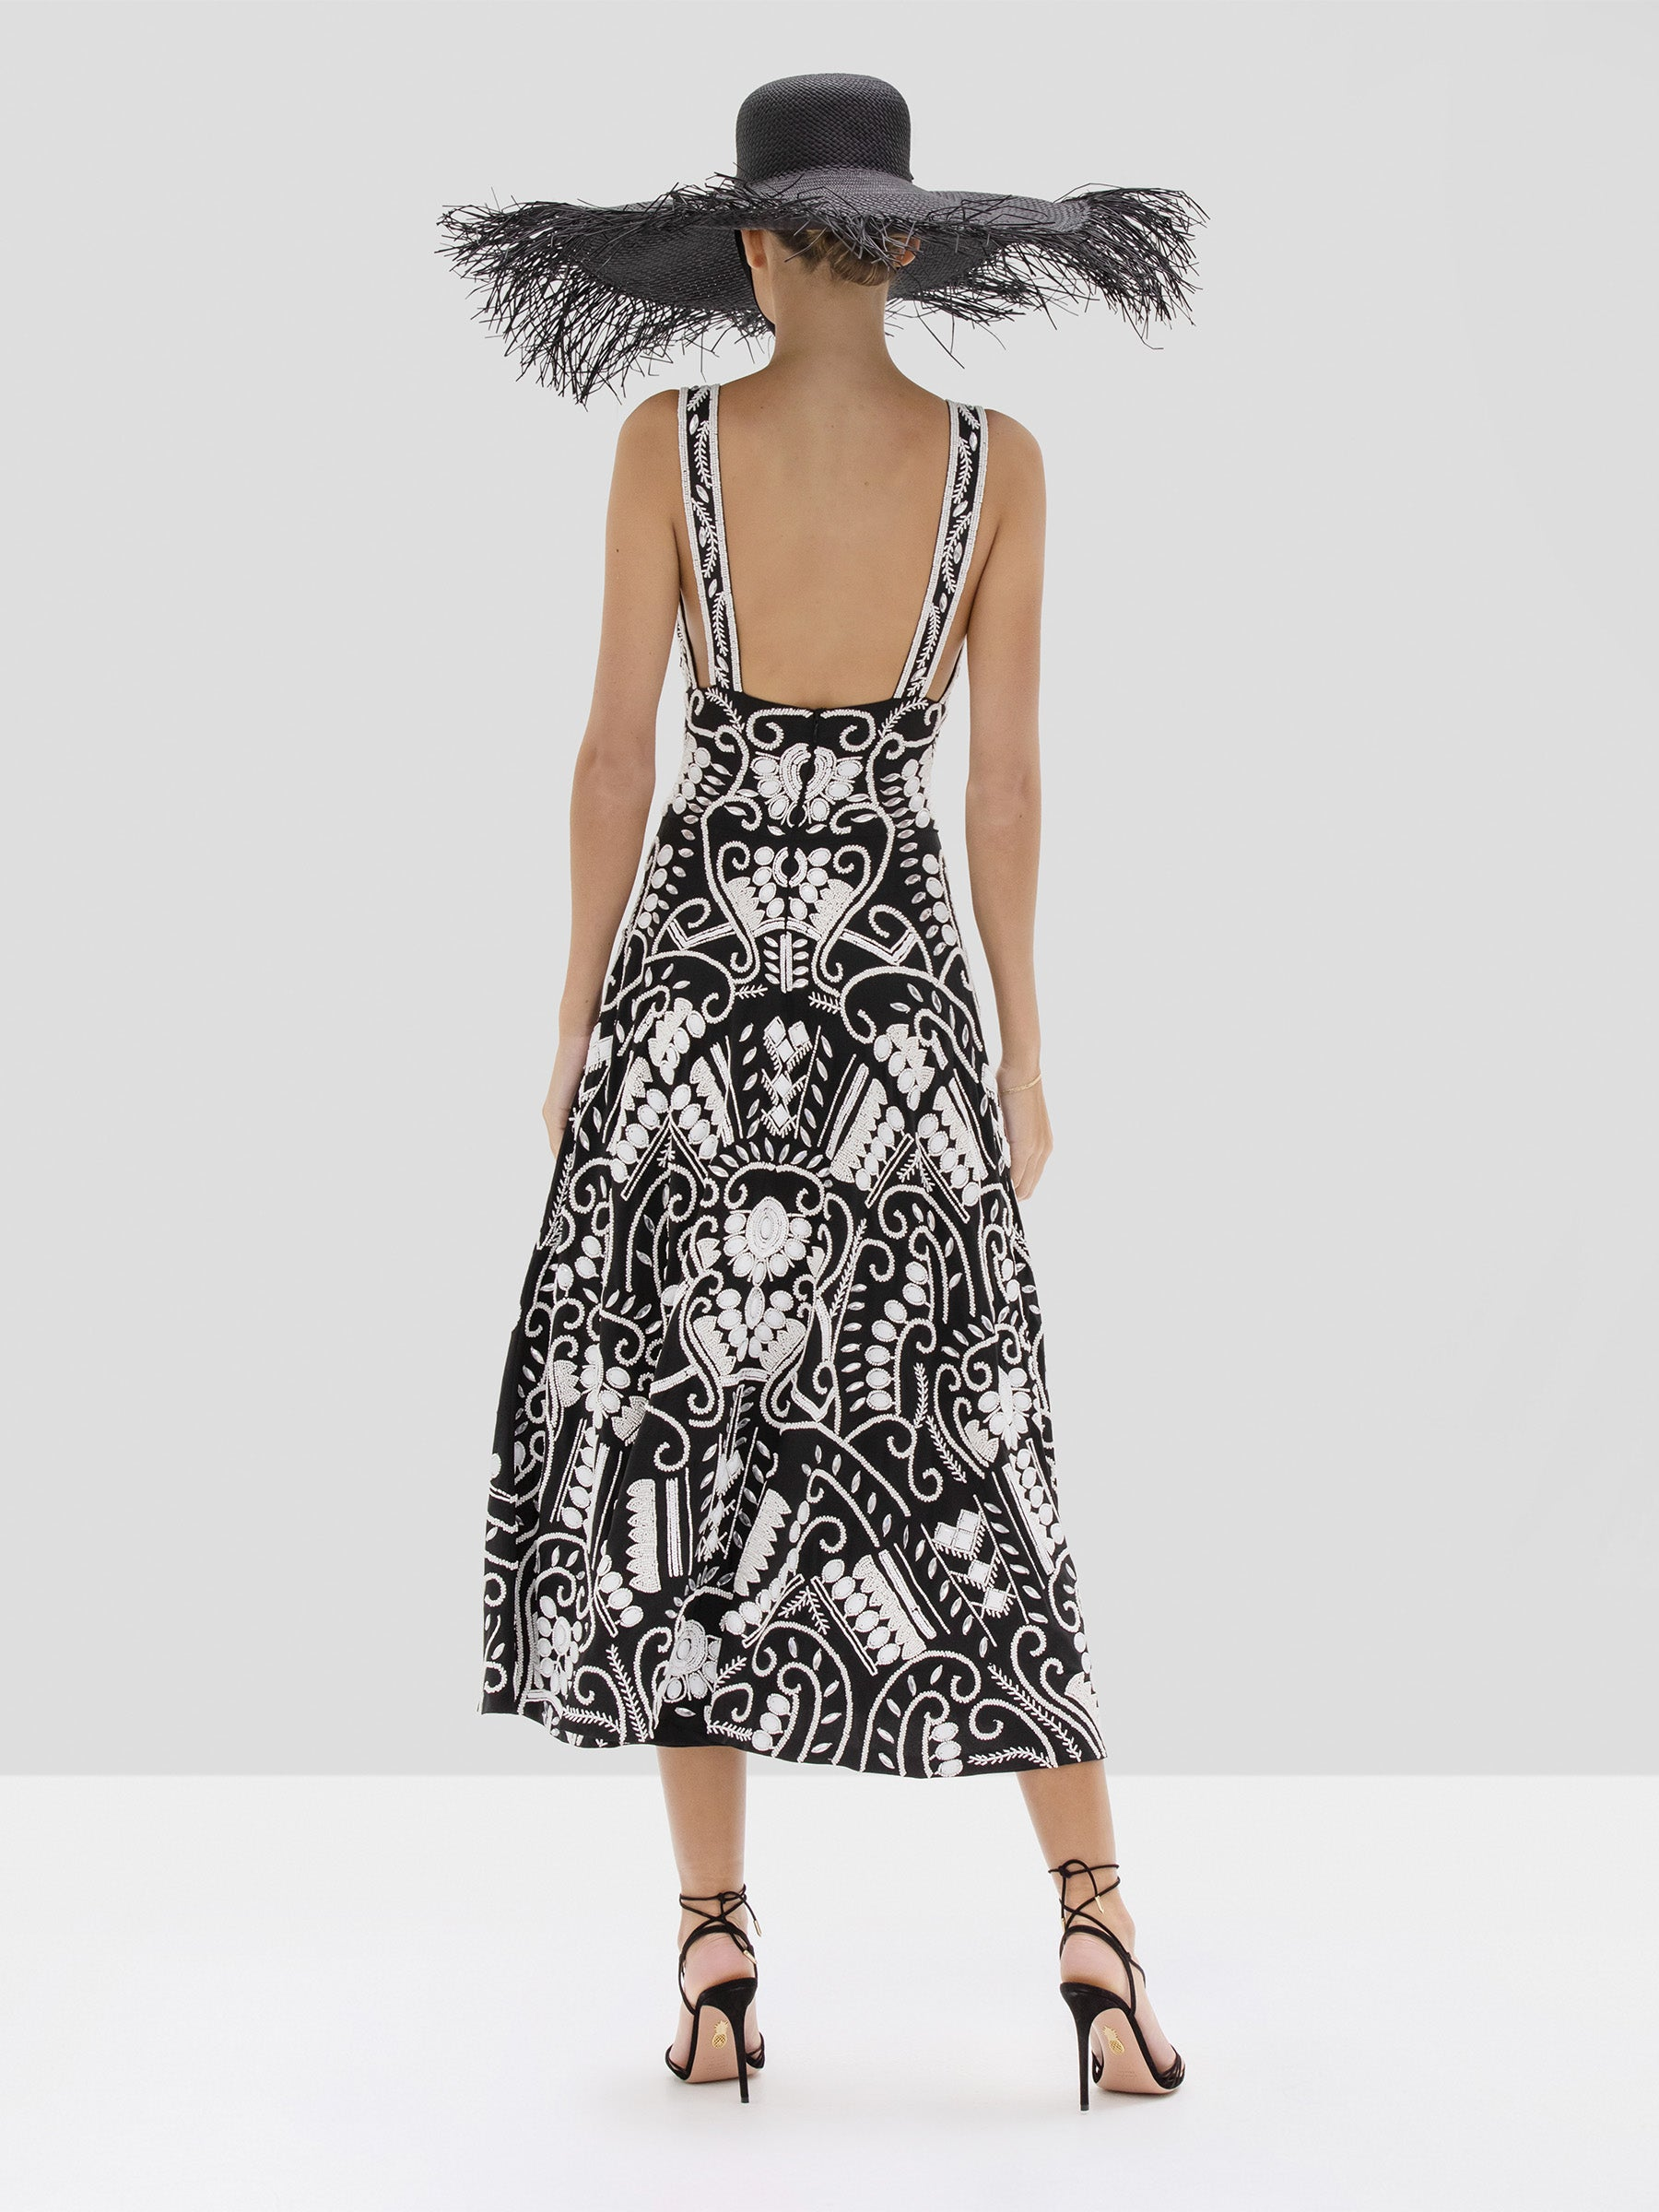 Alexis Brigida Dress in Black and White Embroidery from the Spring Summer 2020 Collection - Rear View